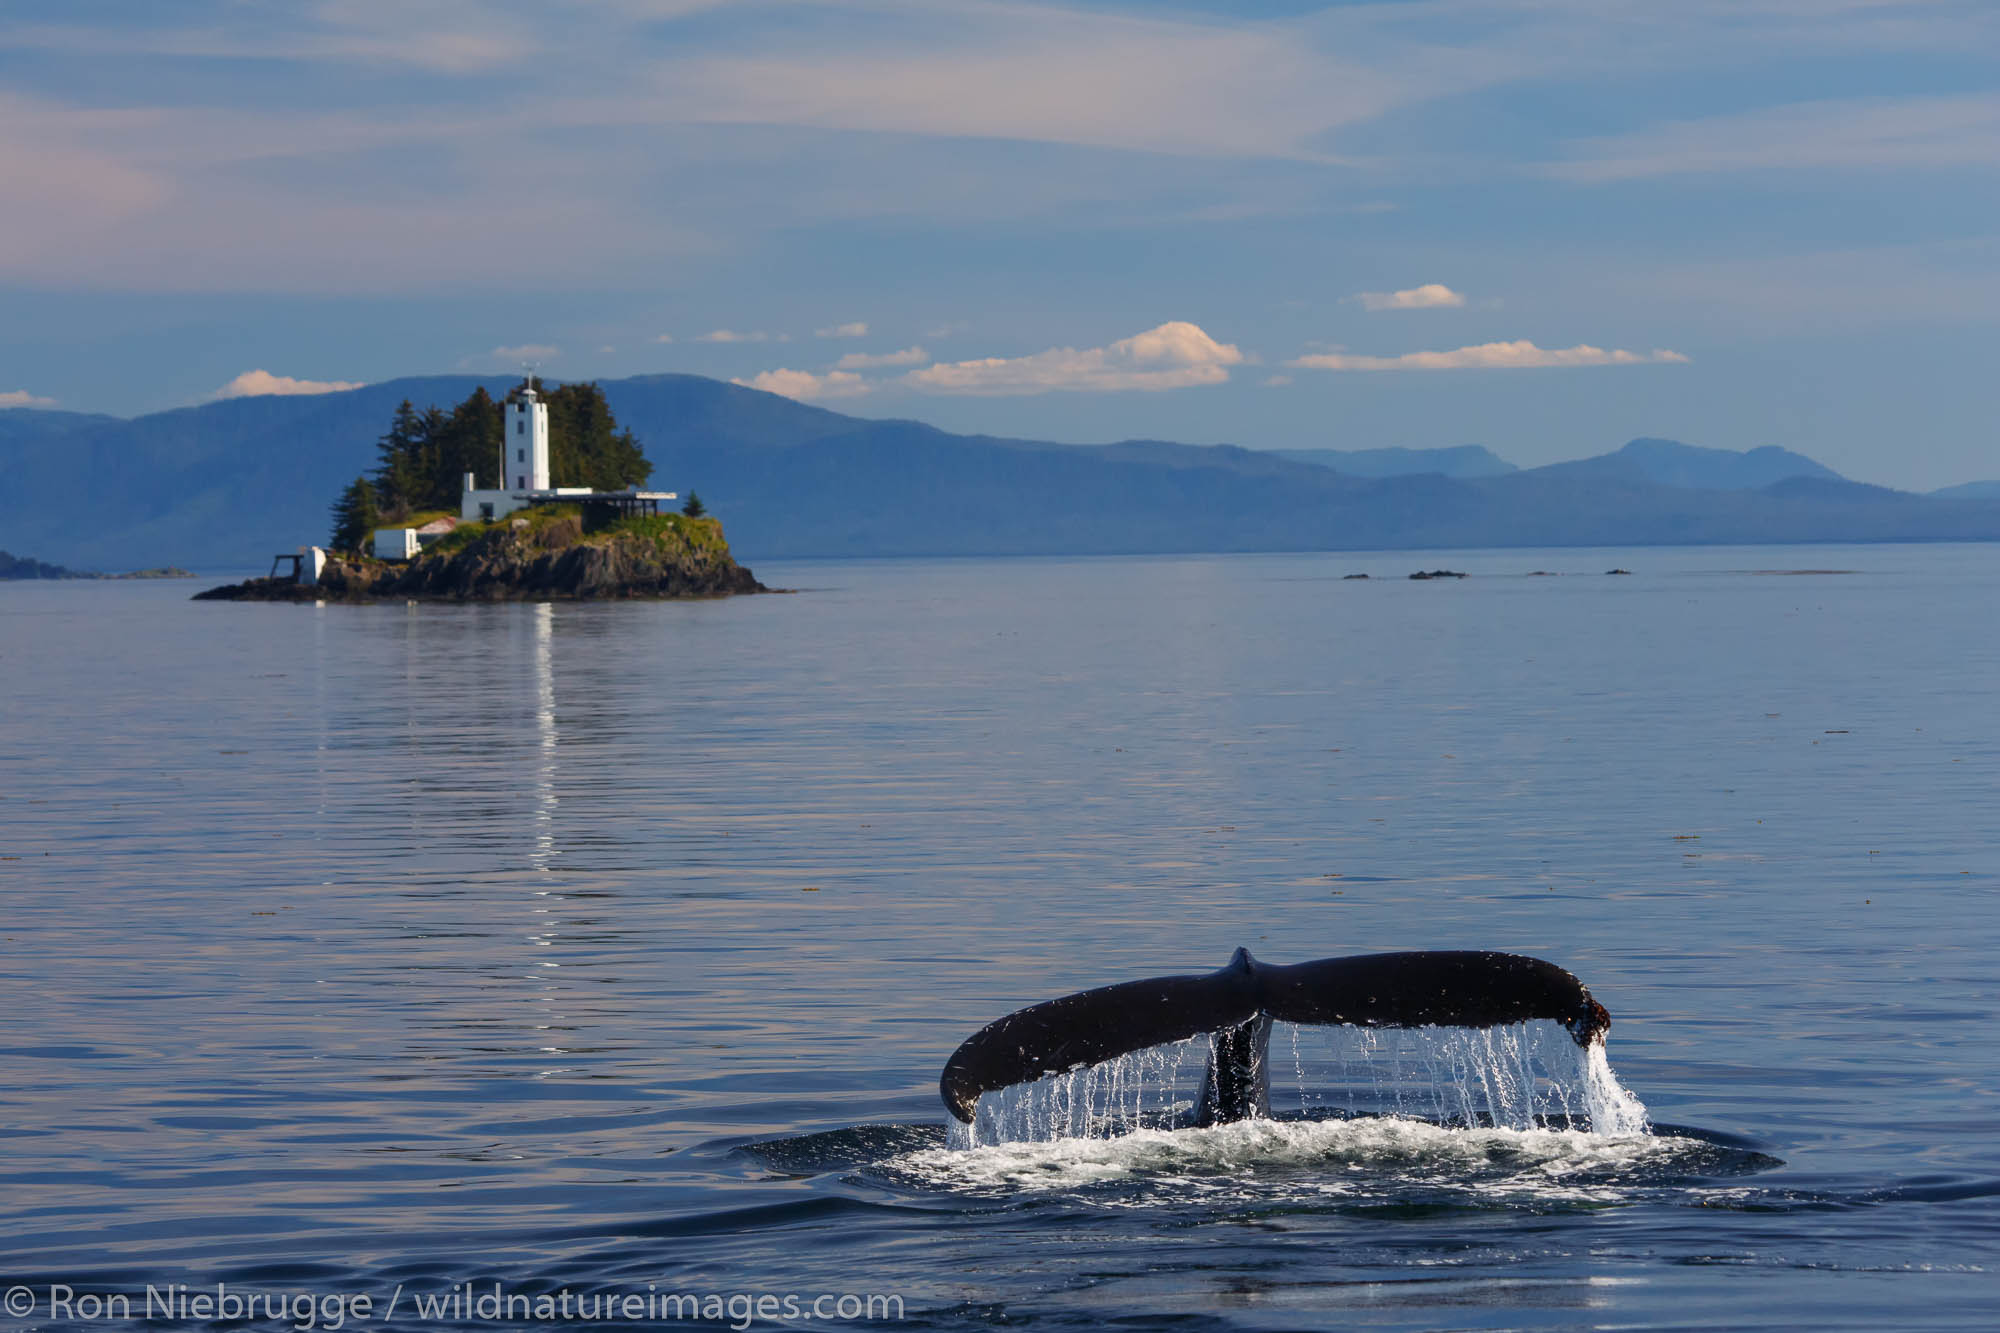 Humpback whales and the Five Finger Lighthouse, Tongass National Forest, Alaska.